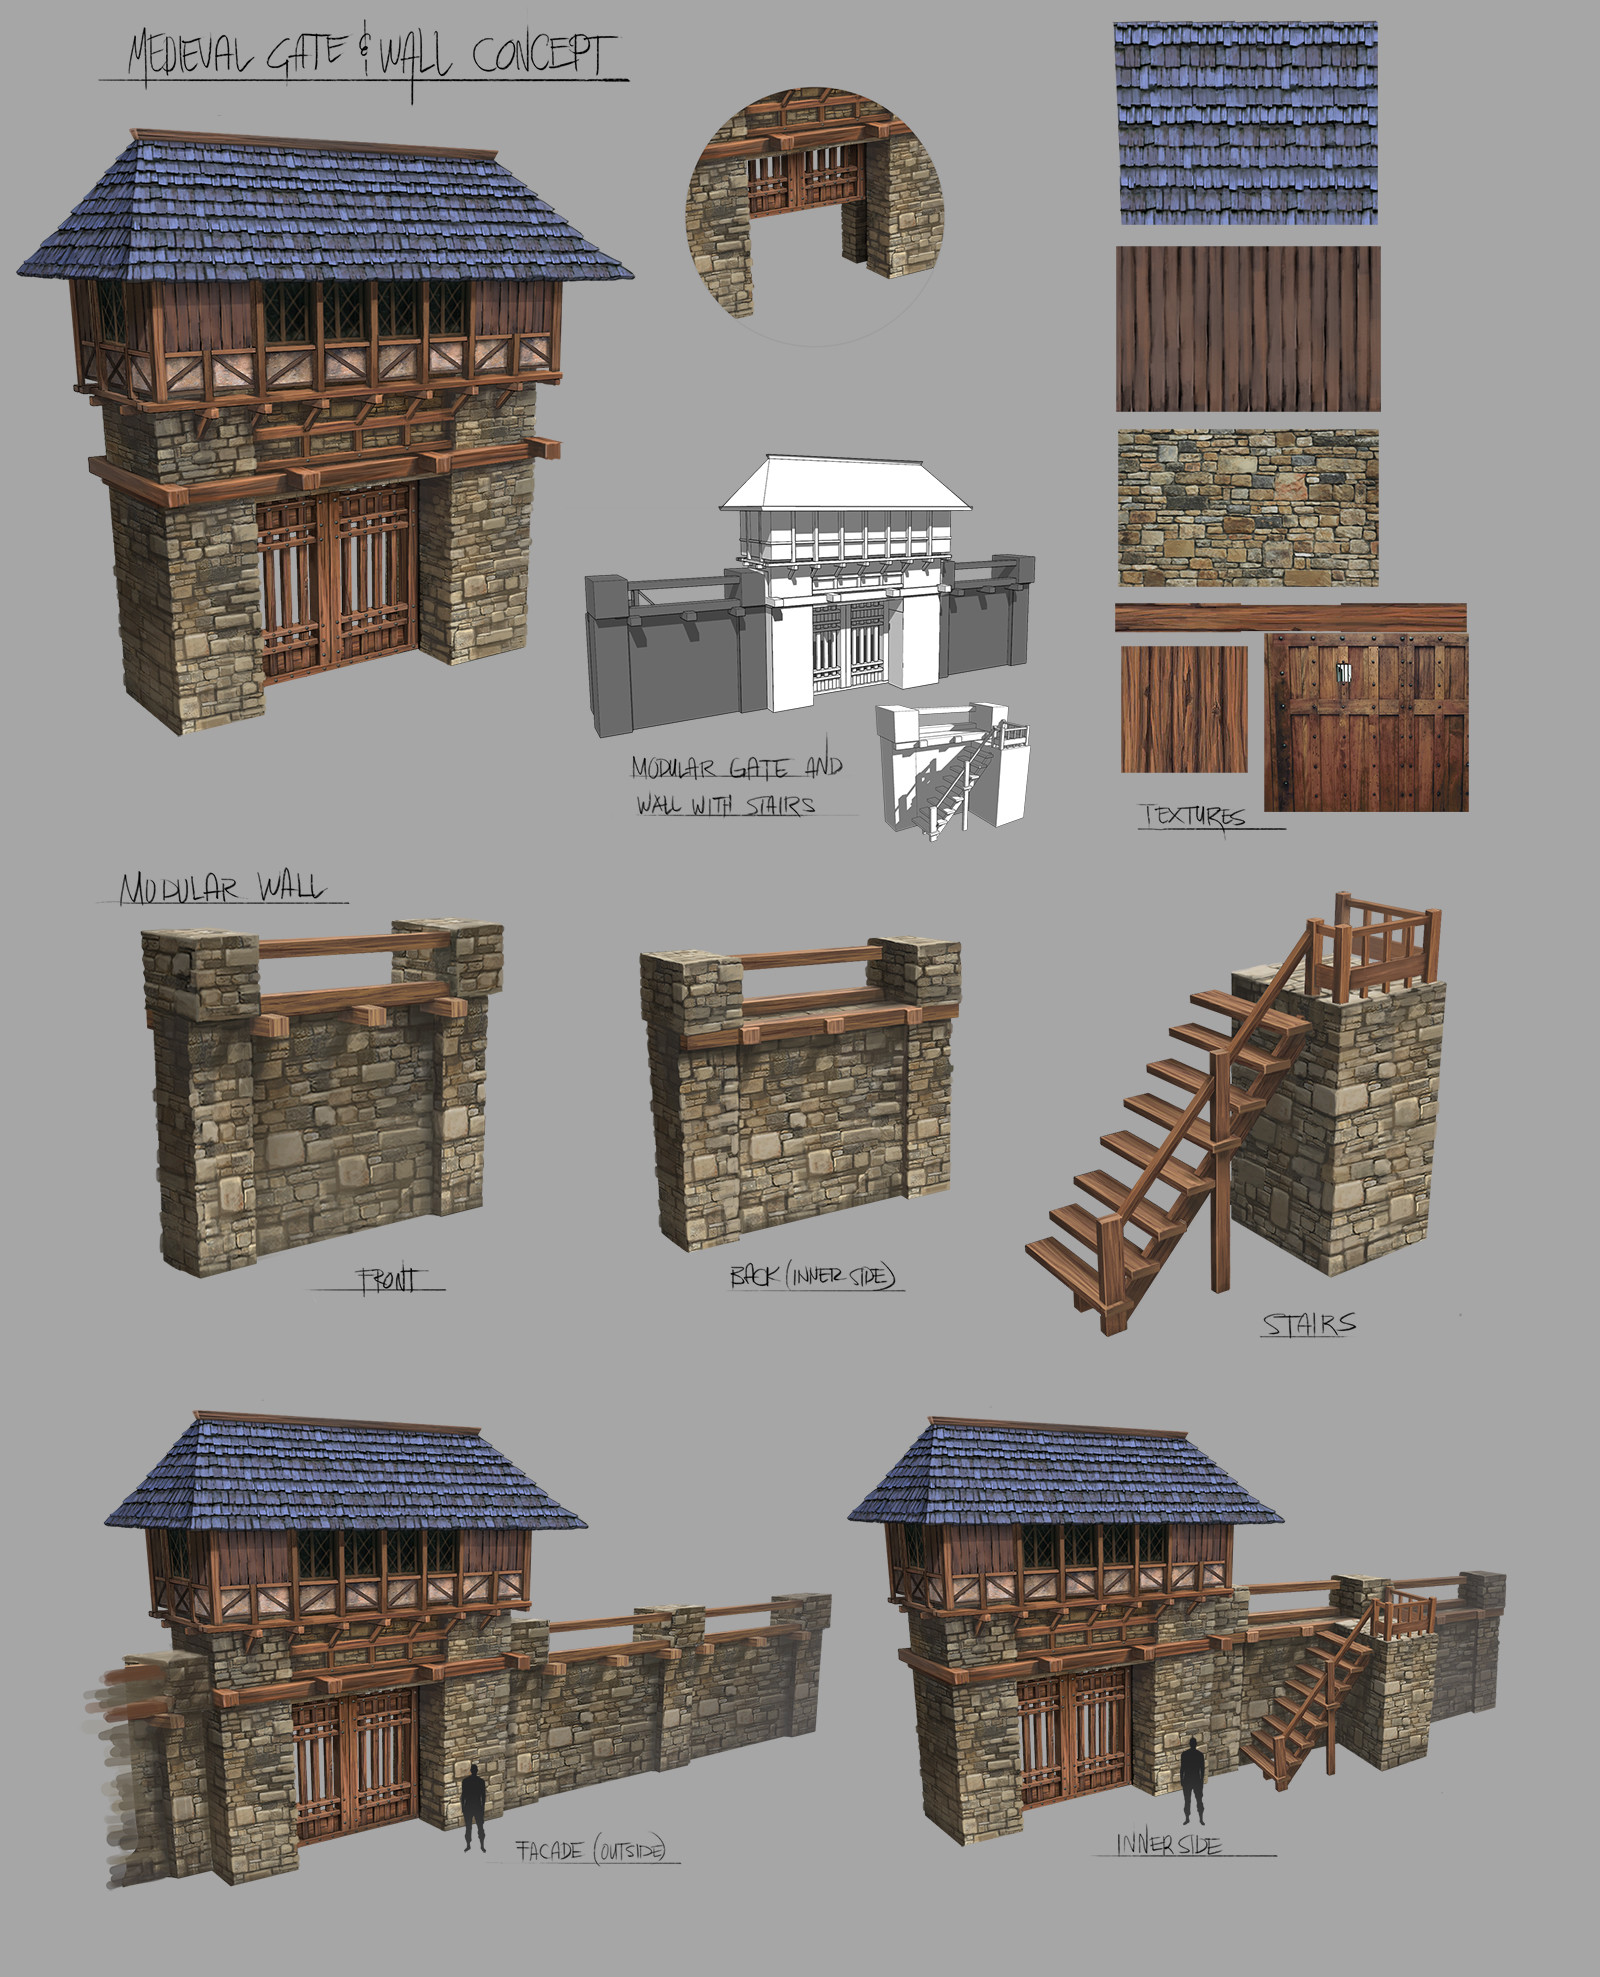 Ferdinand ladera medieval gate wall conceptart